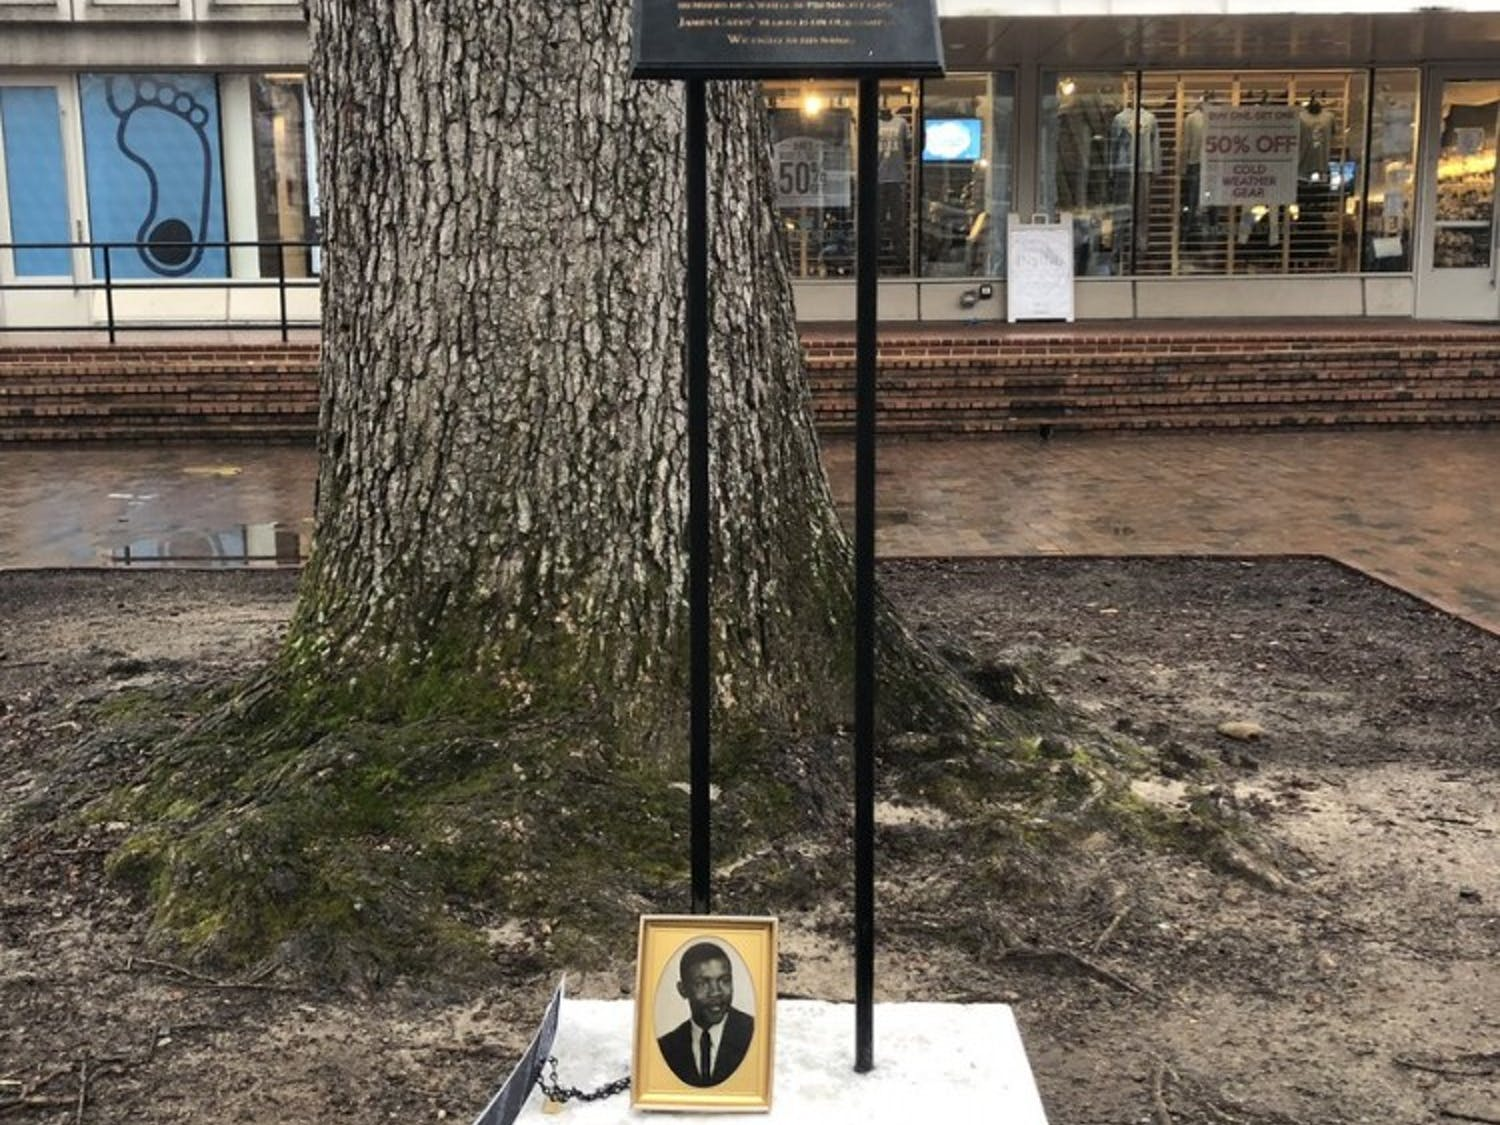 The dedication plaque for James Cates, the UNC student who was stabbed to death by a white supremacist group in the Pit in 1970.